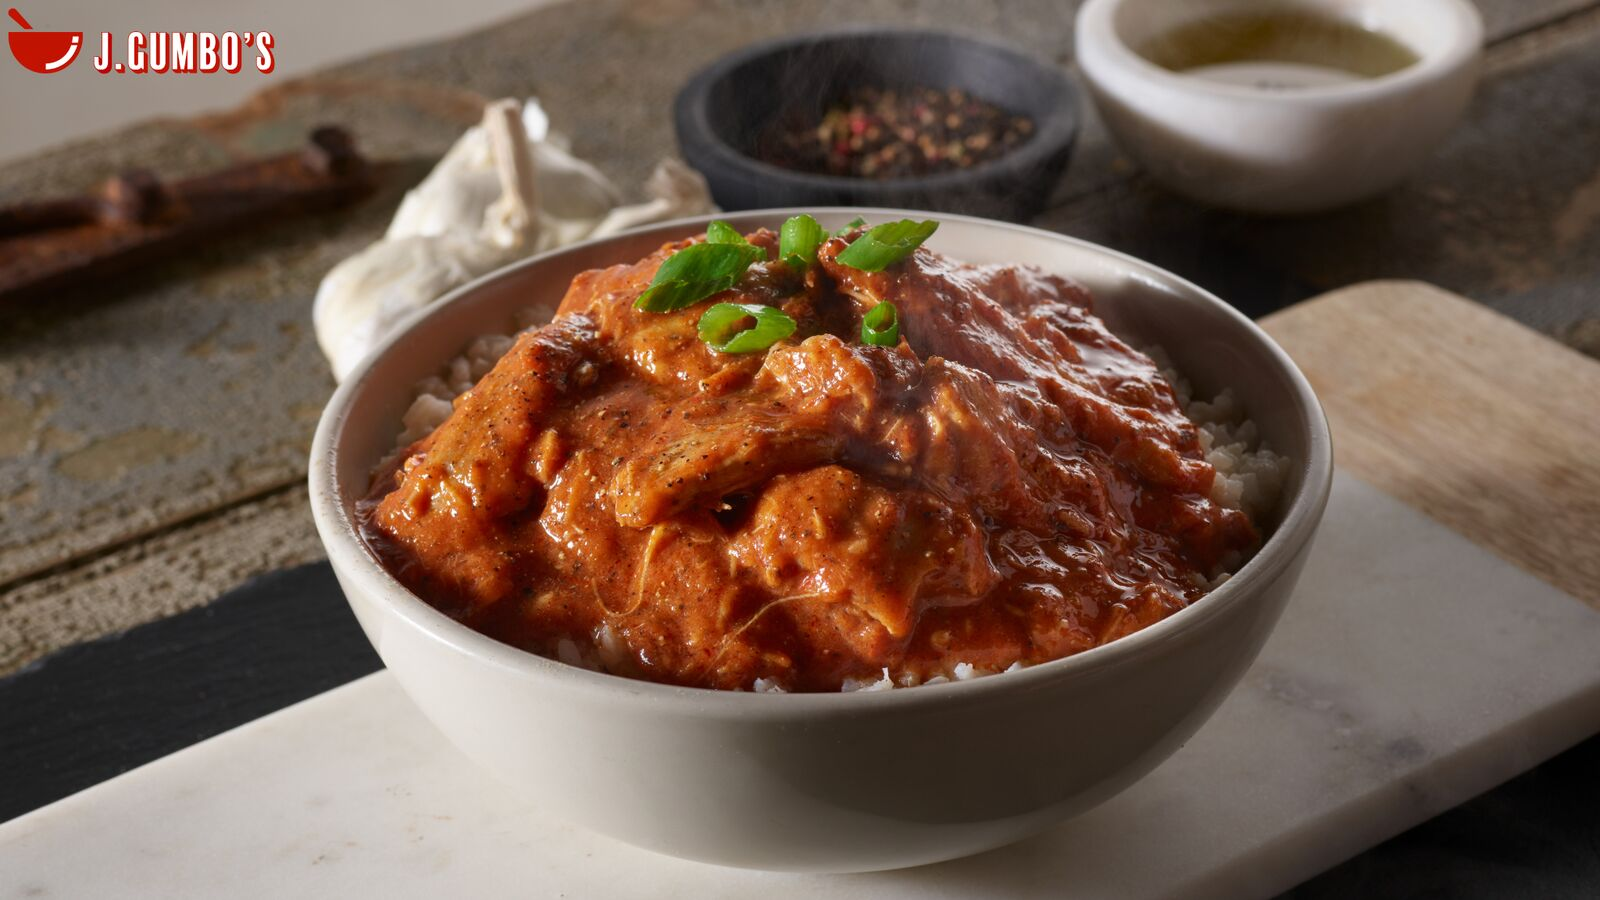 Voodoo Chicken: Slow-Cooked Chicken In Spicy Cajun Tomato Sauce With Garlic And Our Blend Of Voodoo Spices